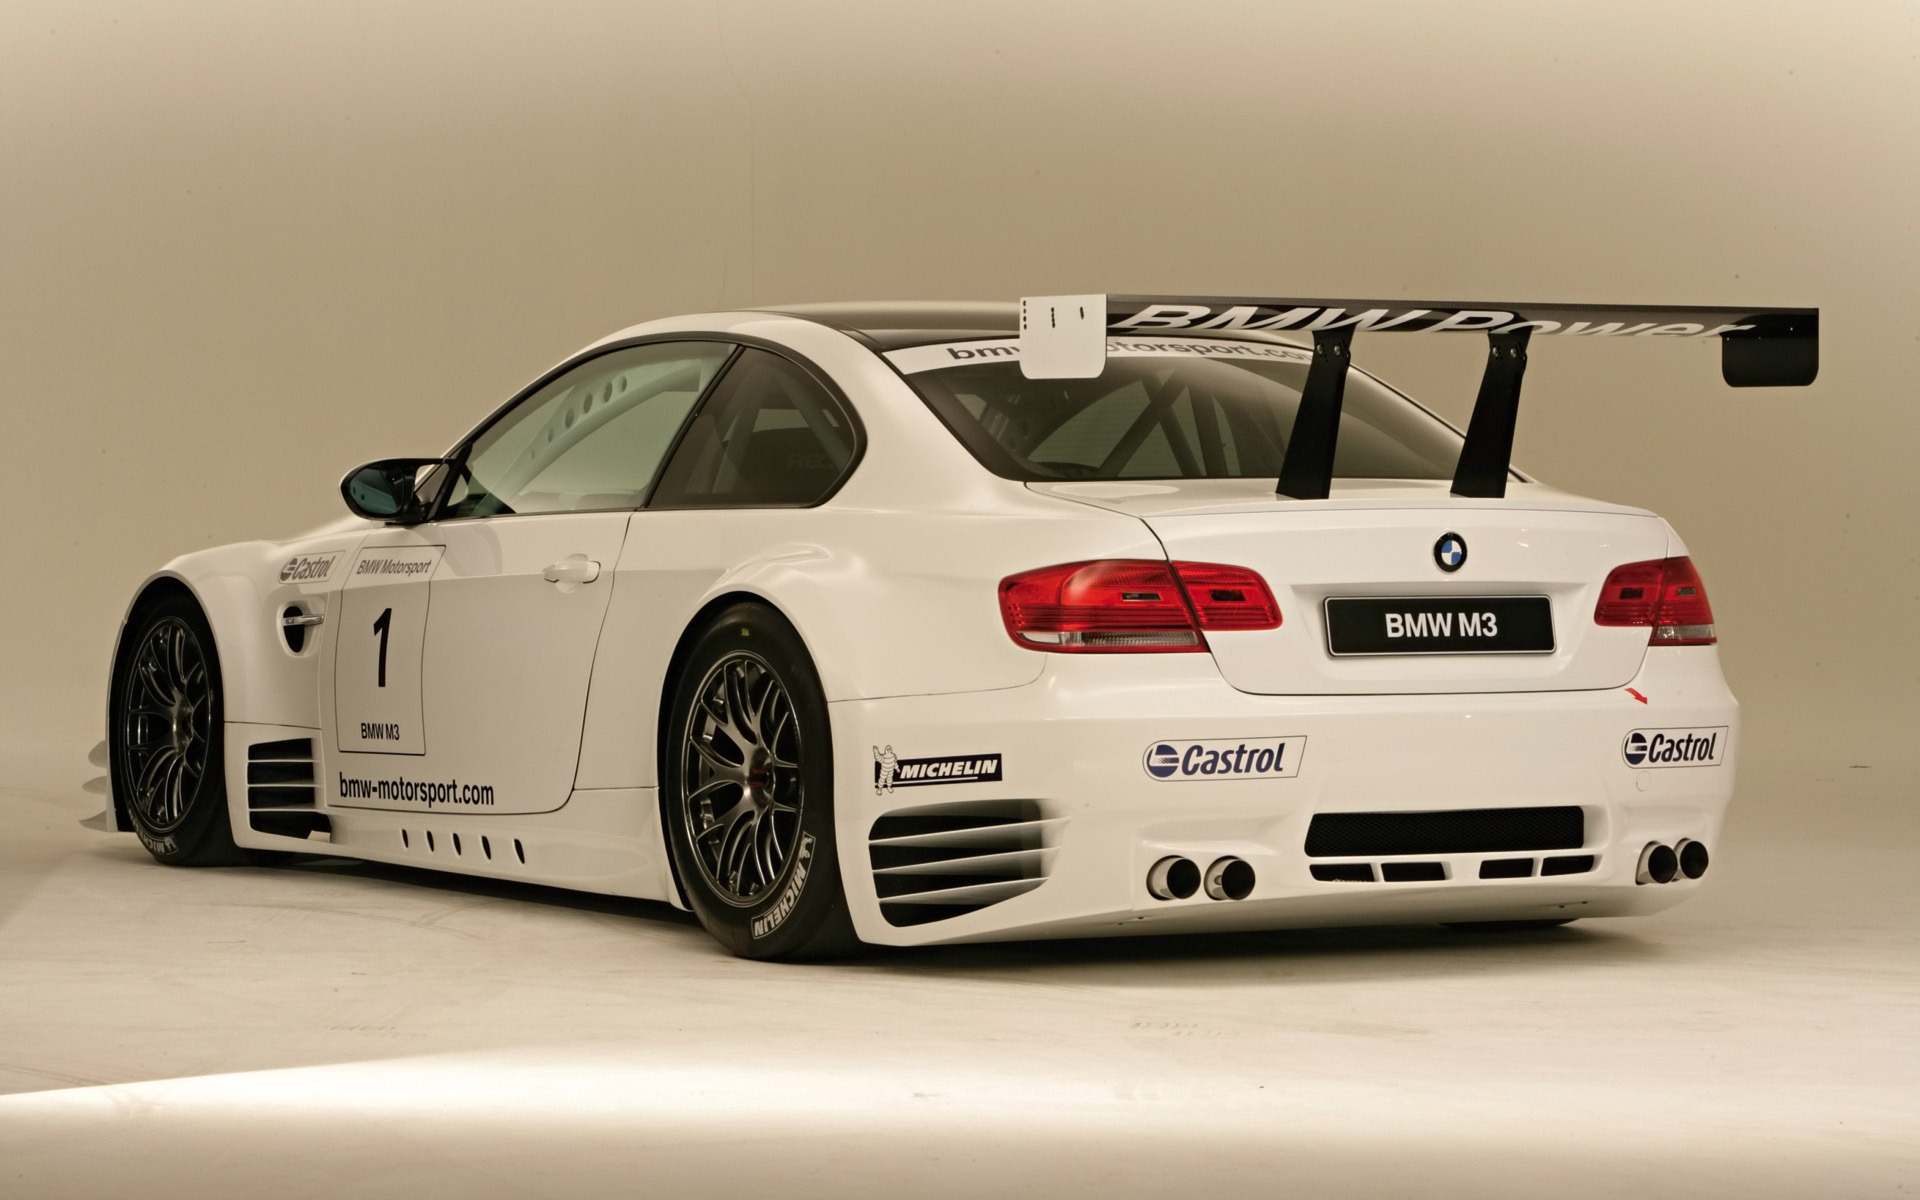 BMW M3 Race Car Wallpaper Cars Wallpapers